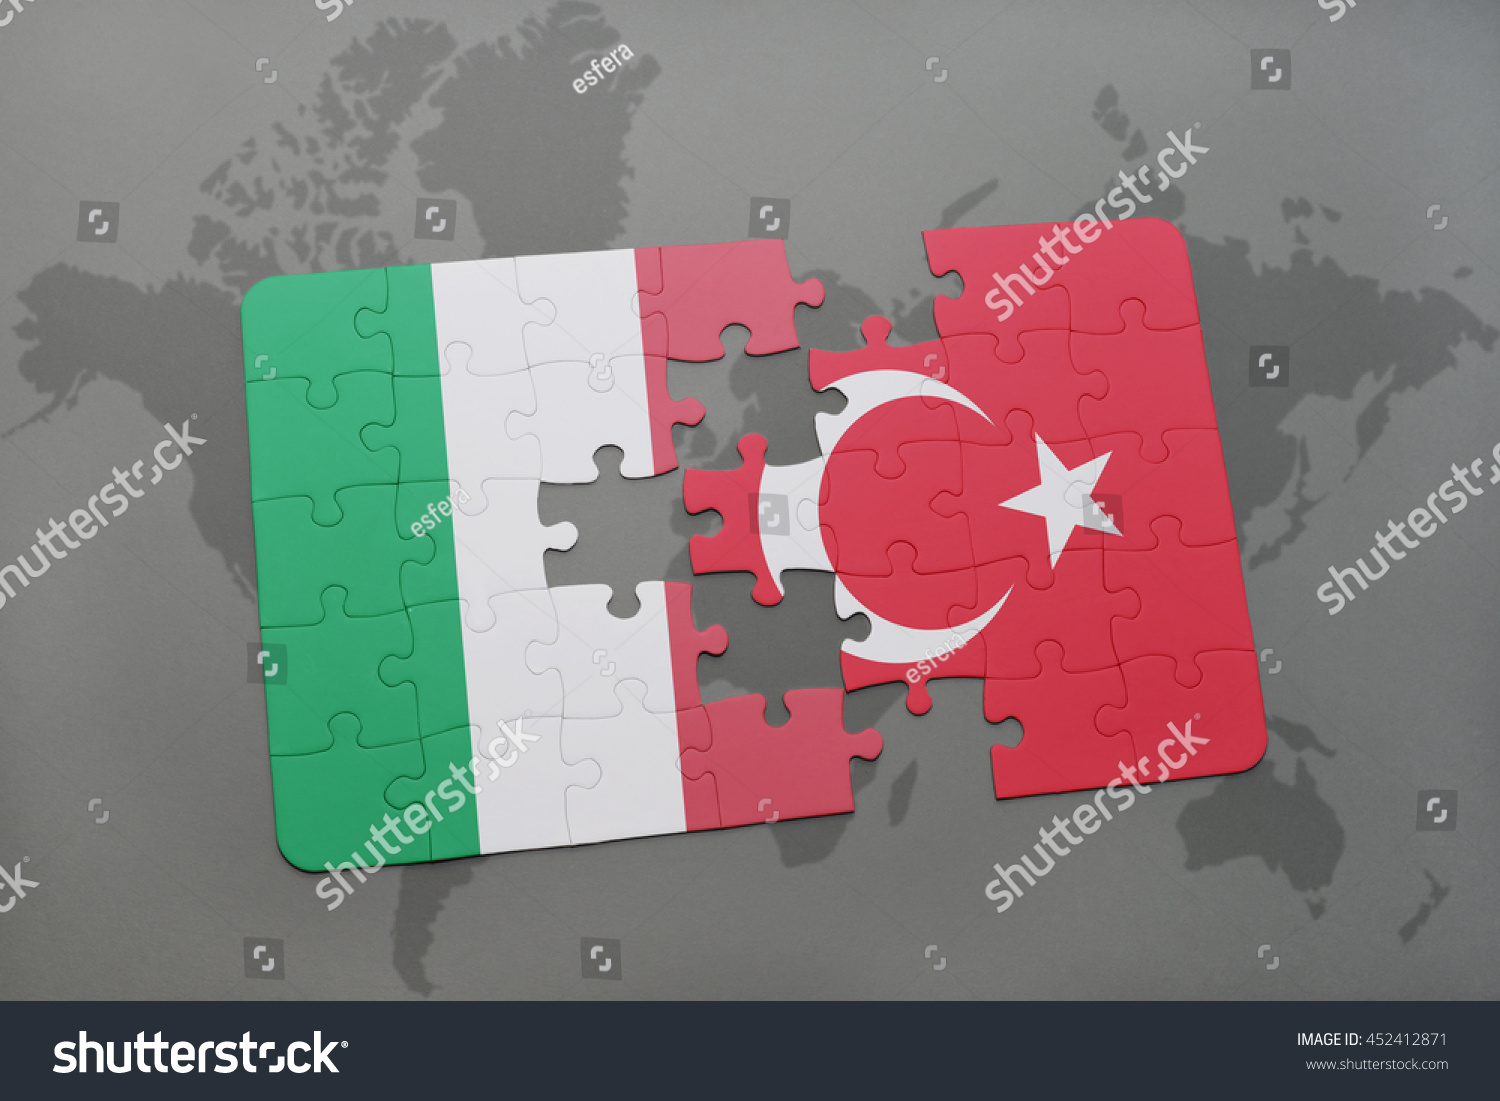 Puzzle national flag italy turkey on stock illustration 452412871 puzzle with the national flag of italy and turkey on a world map background 3d gumiabroncs Image collections